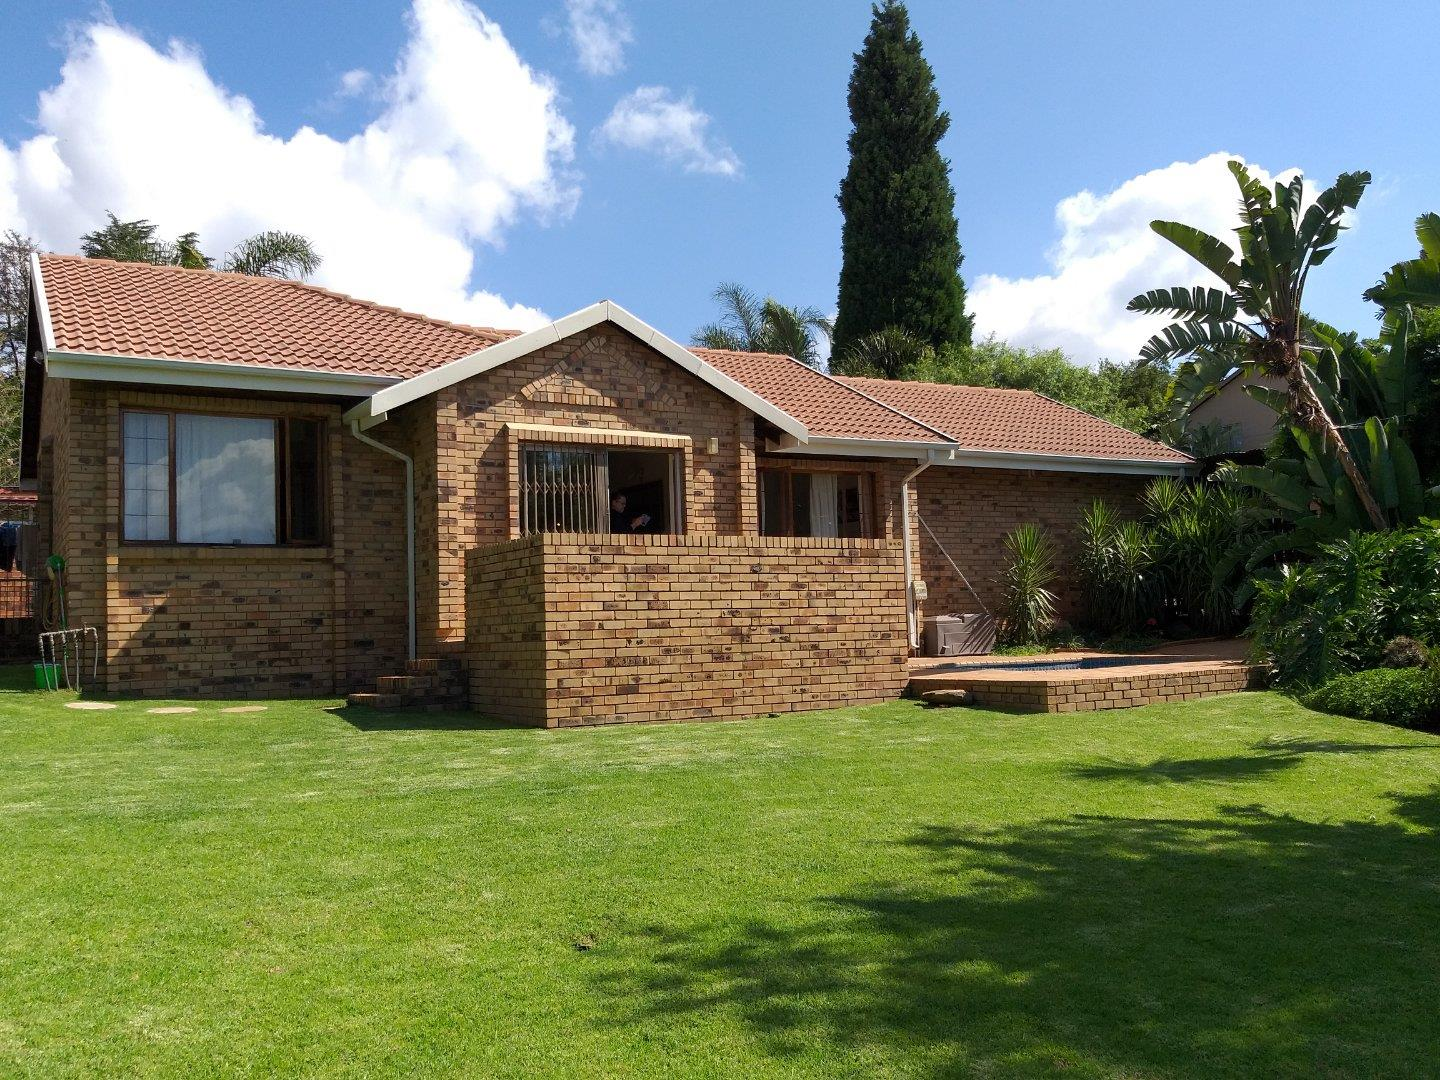 3 Bedroom Townhouse for Sale in Wilro Park, Roodepoort - Gauteng